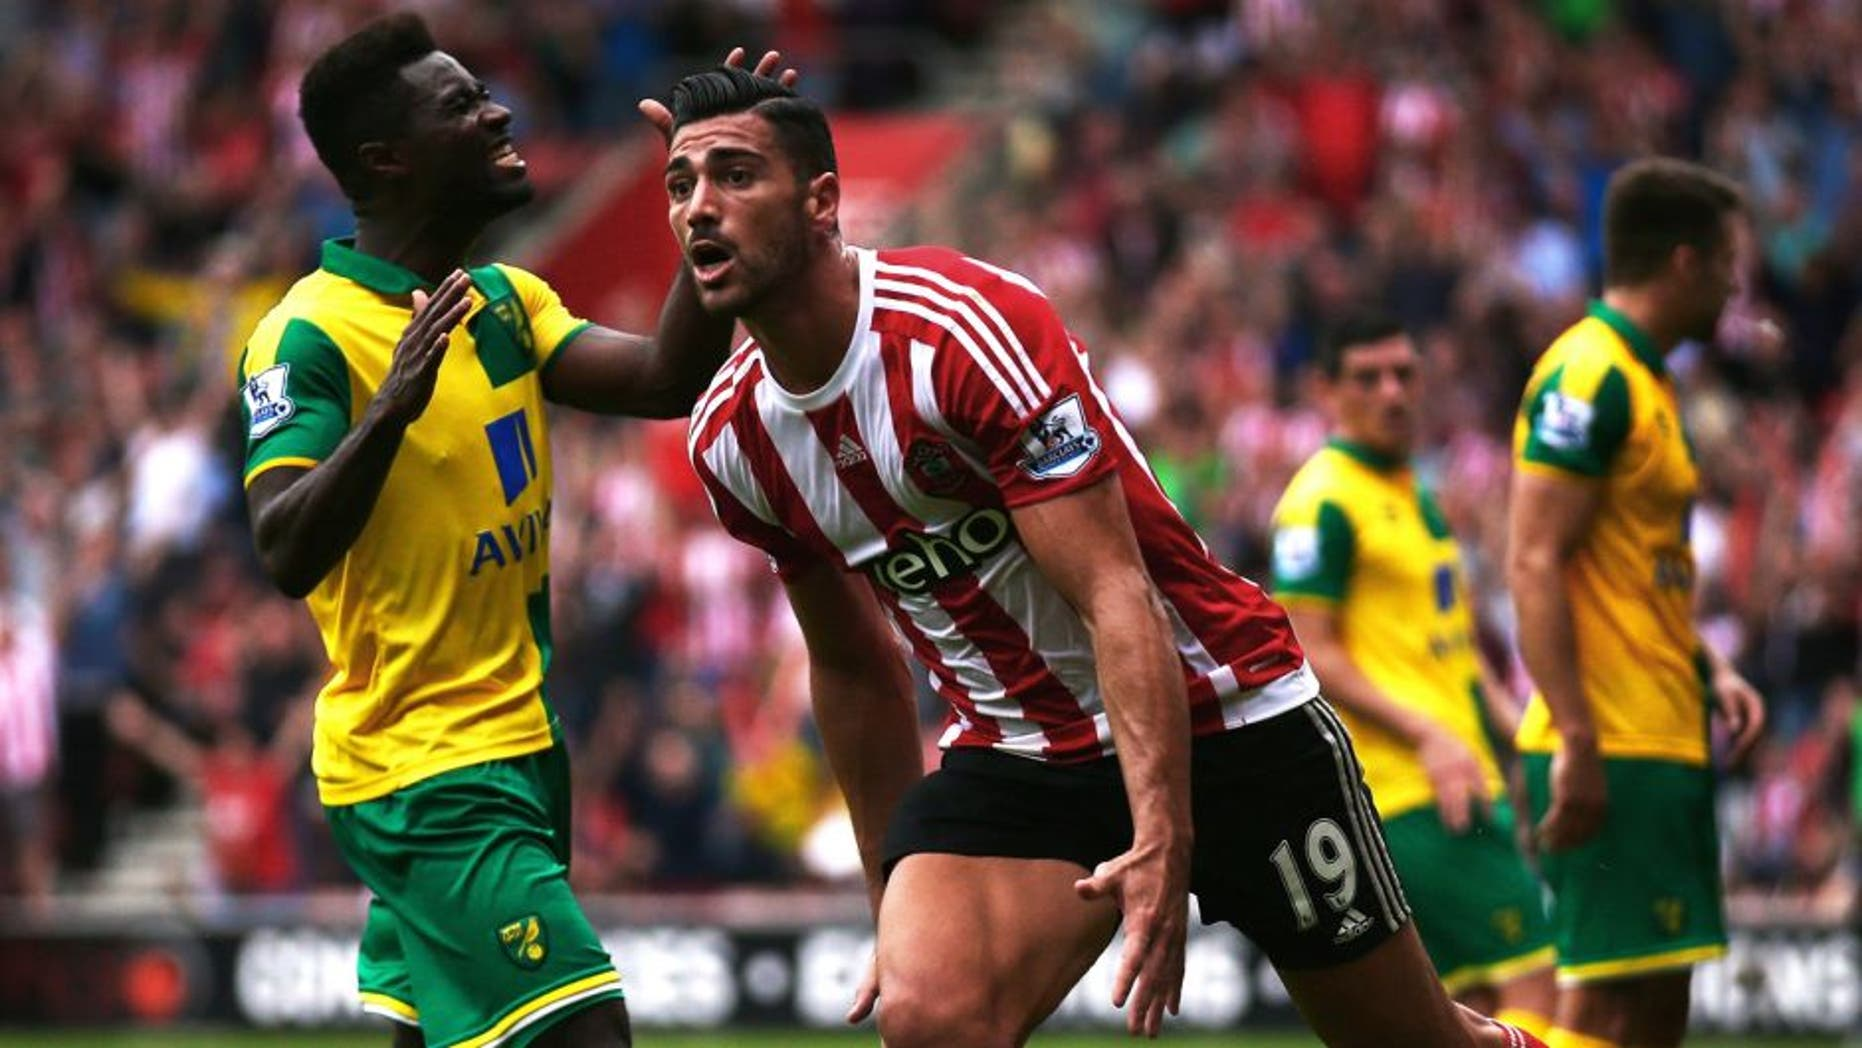 SOUTHAMPTON, ENGLAND - AUGUST 30: Graziano Pelle of Southampton celebrates scoring the opening goal during the Barclays Premier League match between Southampton and Norwich City at St Mary's Stadium on August 30, 2015 in Southampton, England. (Photo by Paul Gilham/Getty Images)